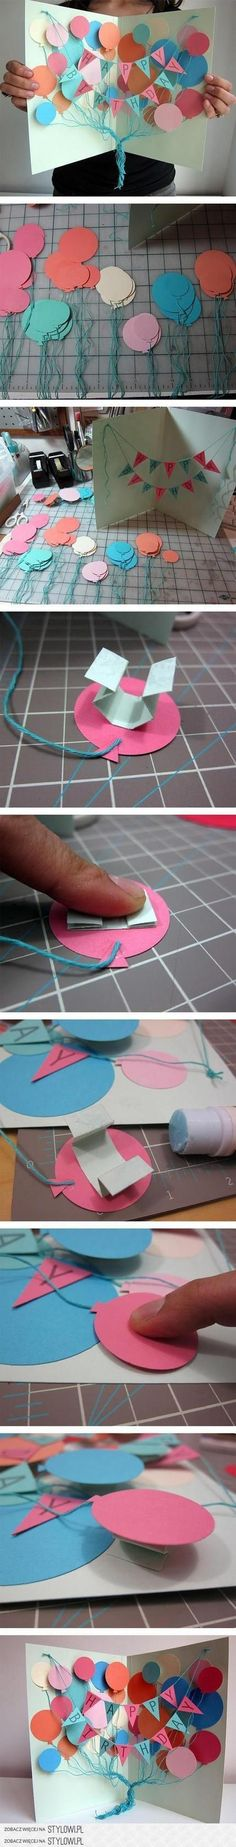 Awesome DIY Birthday Card - A Creative, Meaningful and Cheap DIY Gift for Friend. Awesome DIY Birthday Card - A Creative, Meaningful and Cheap DIY Gift for Friends and Family. Kids Crafts, Diy And Crafts, Craft Projects, Paper Crafts, Paper Glue, Home Crafts, Tarjetas Diy, Crafty Craft, Diy Cards